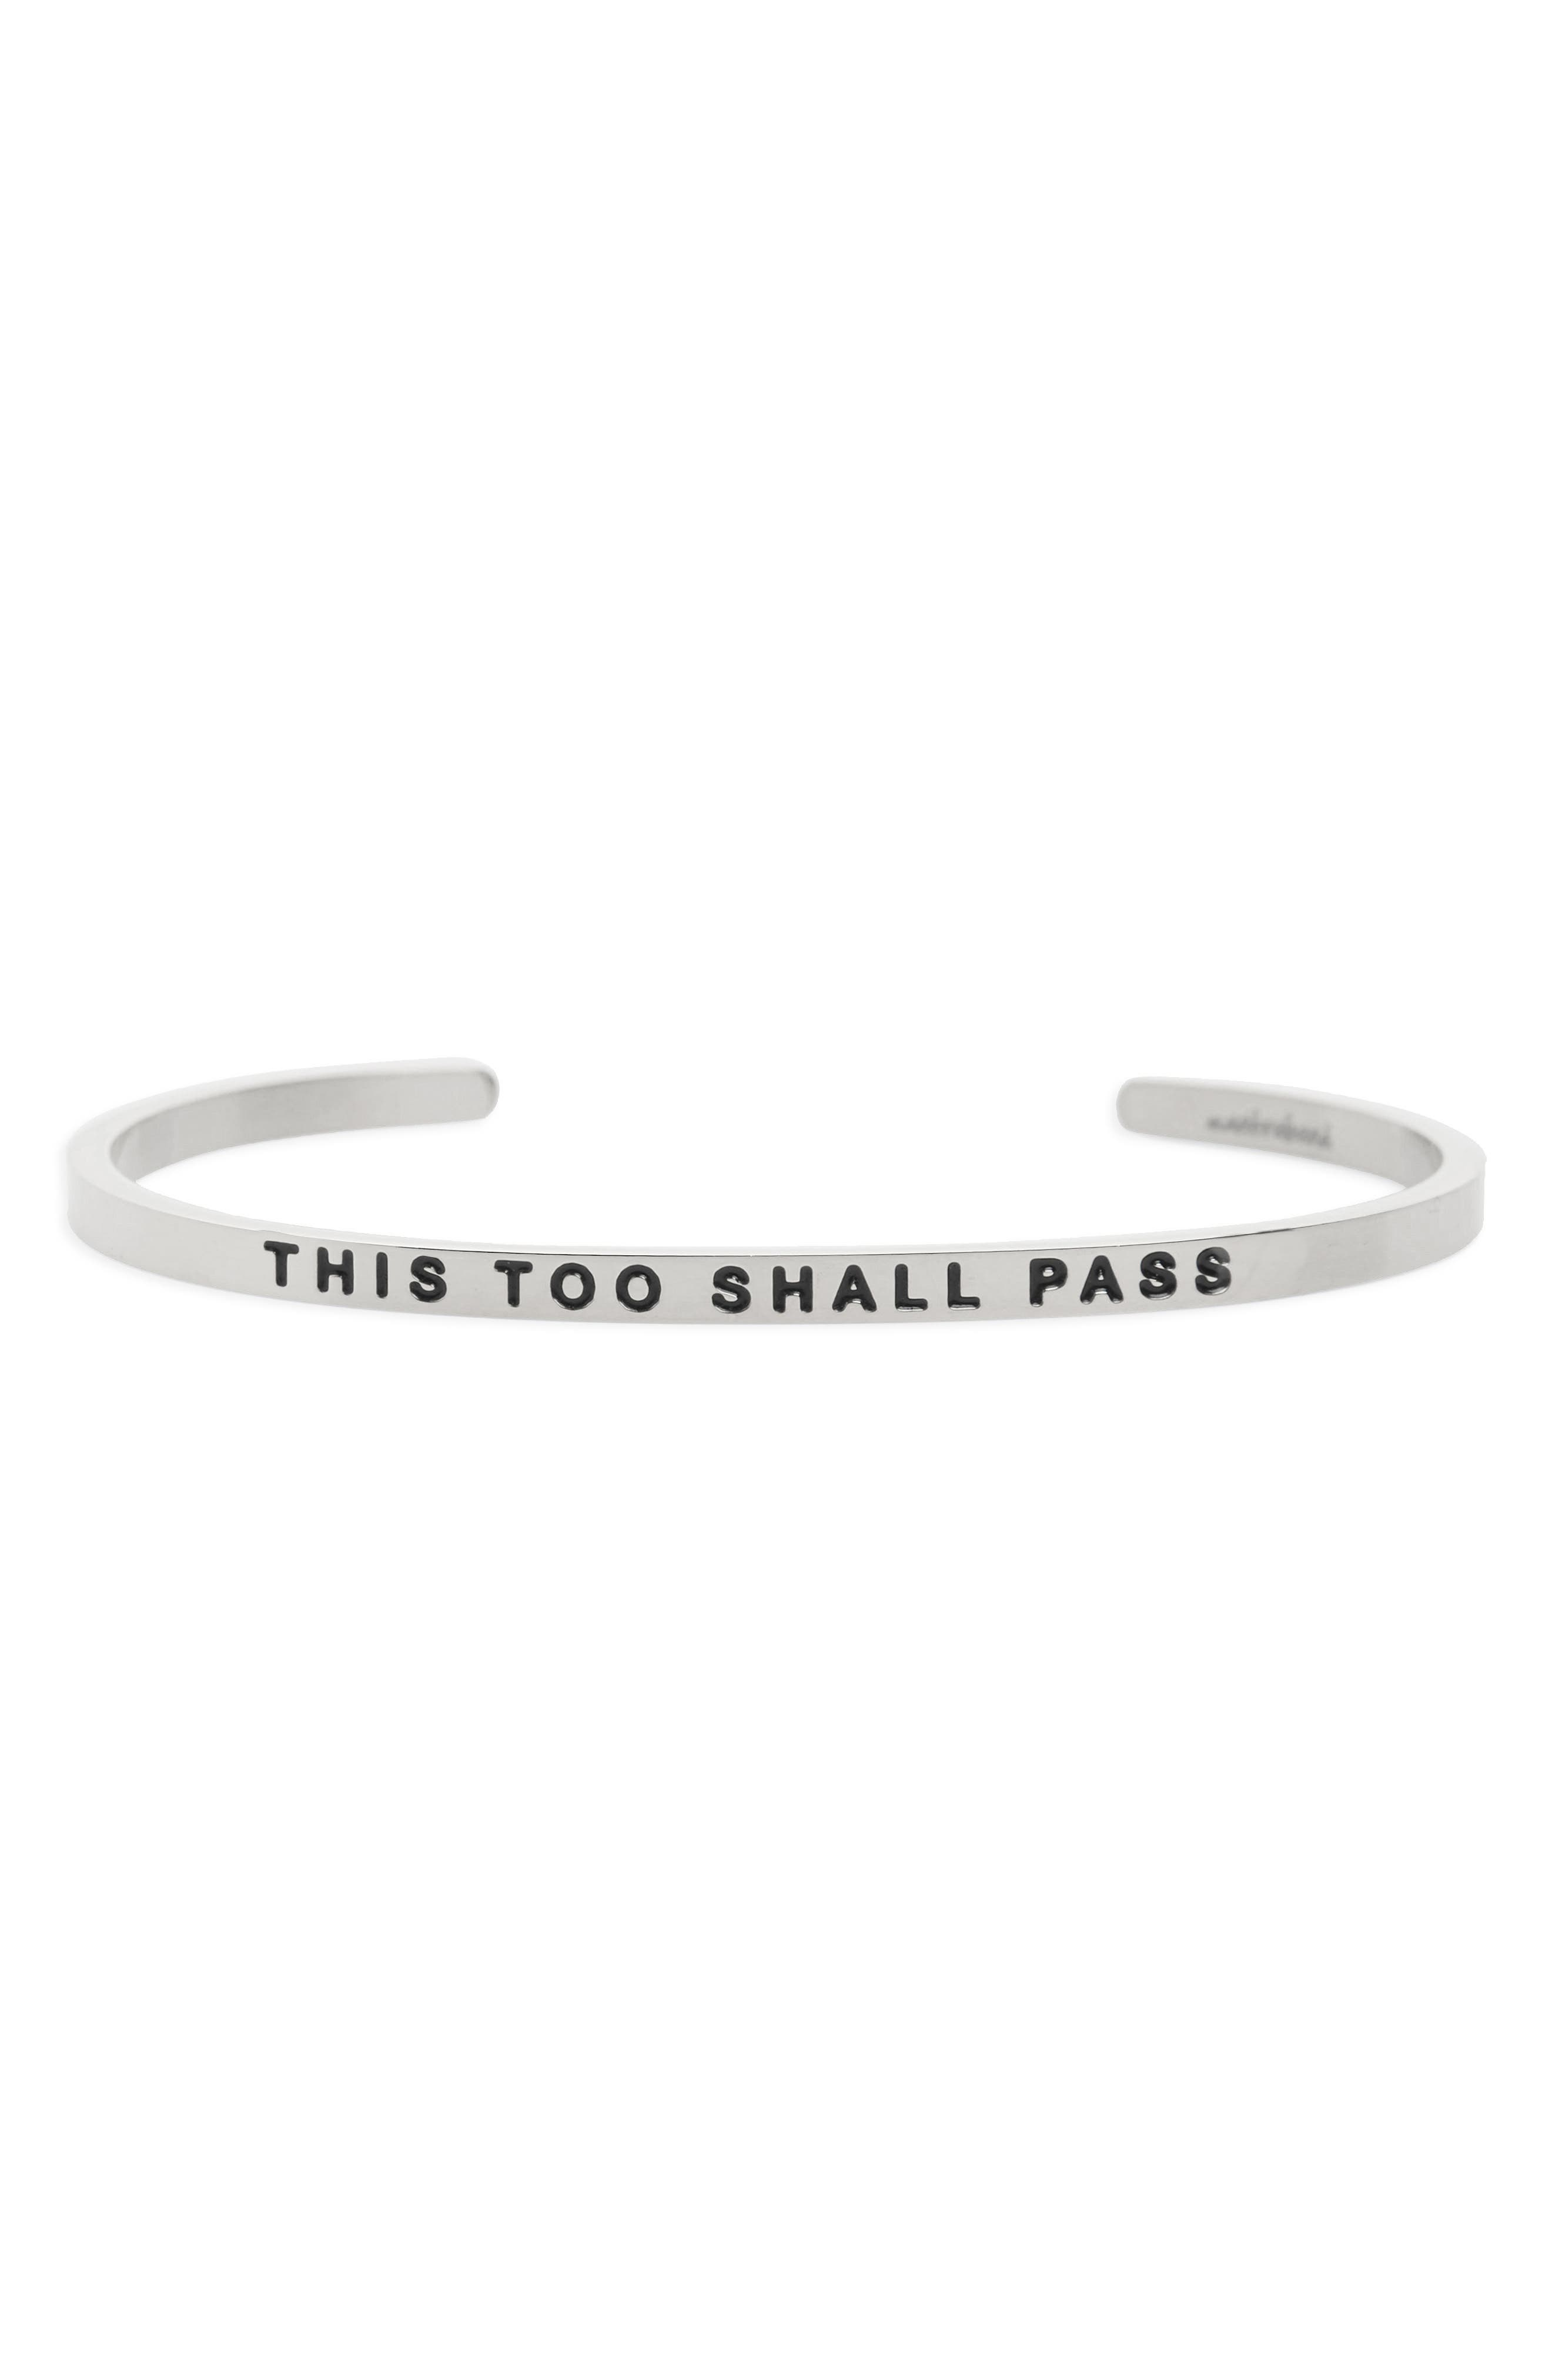 This Too Shall Pass Wrist Cuff,                             Main thumbnail 1, color,